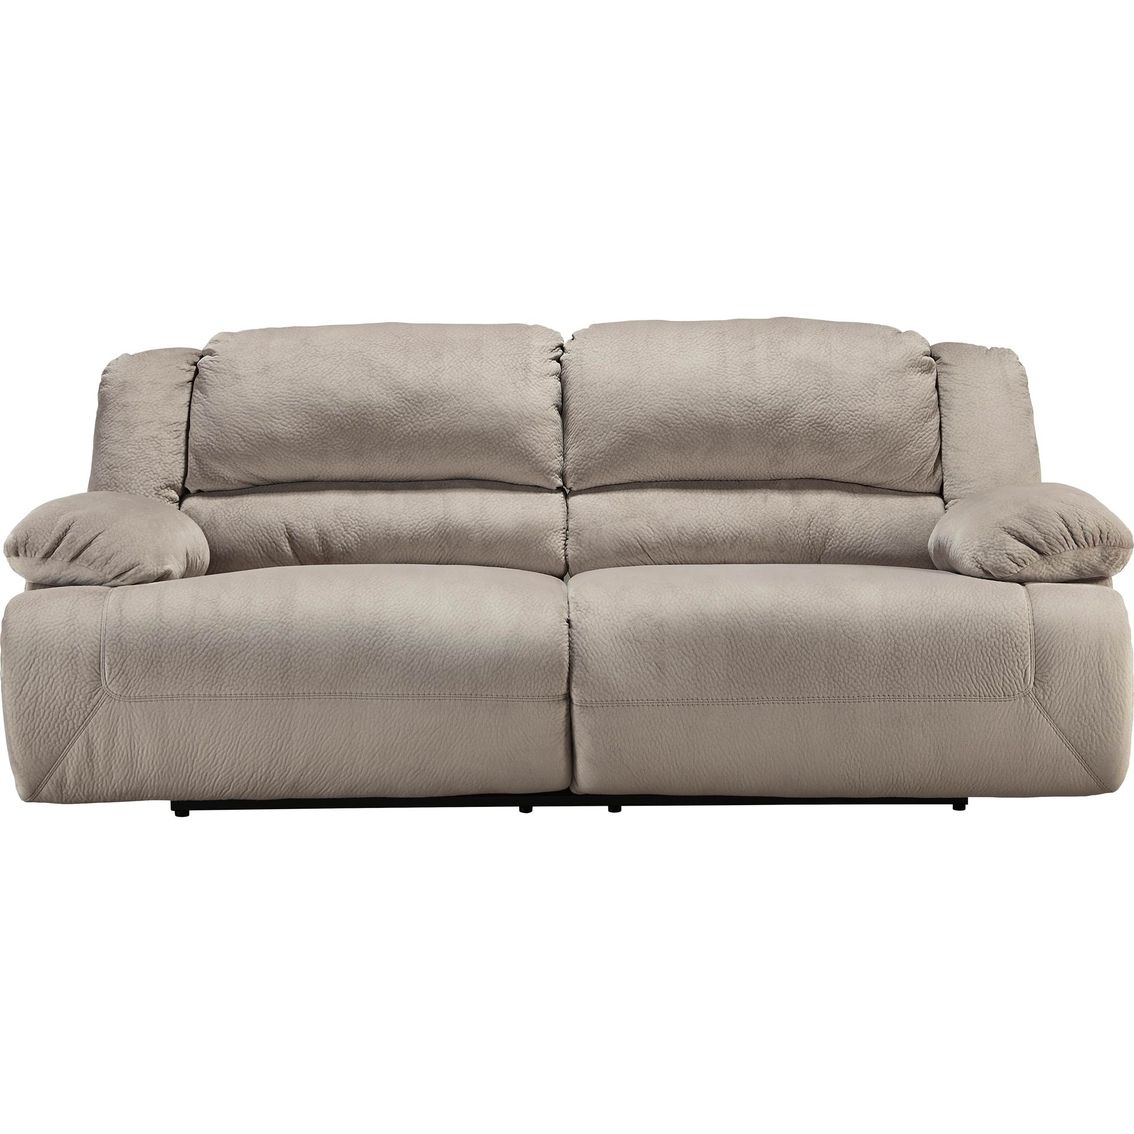 Ashley Toletta Reclining Sofa Sofas Home Appliances Shop The Exchange Upholstered Couch Power Reclining Sofa Reclining Sofa